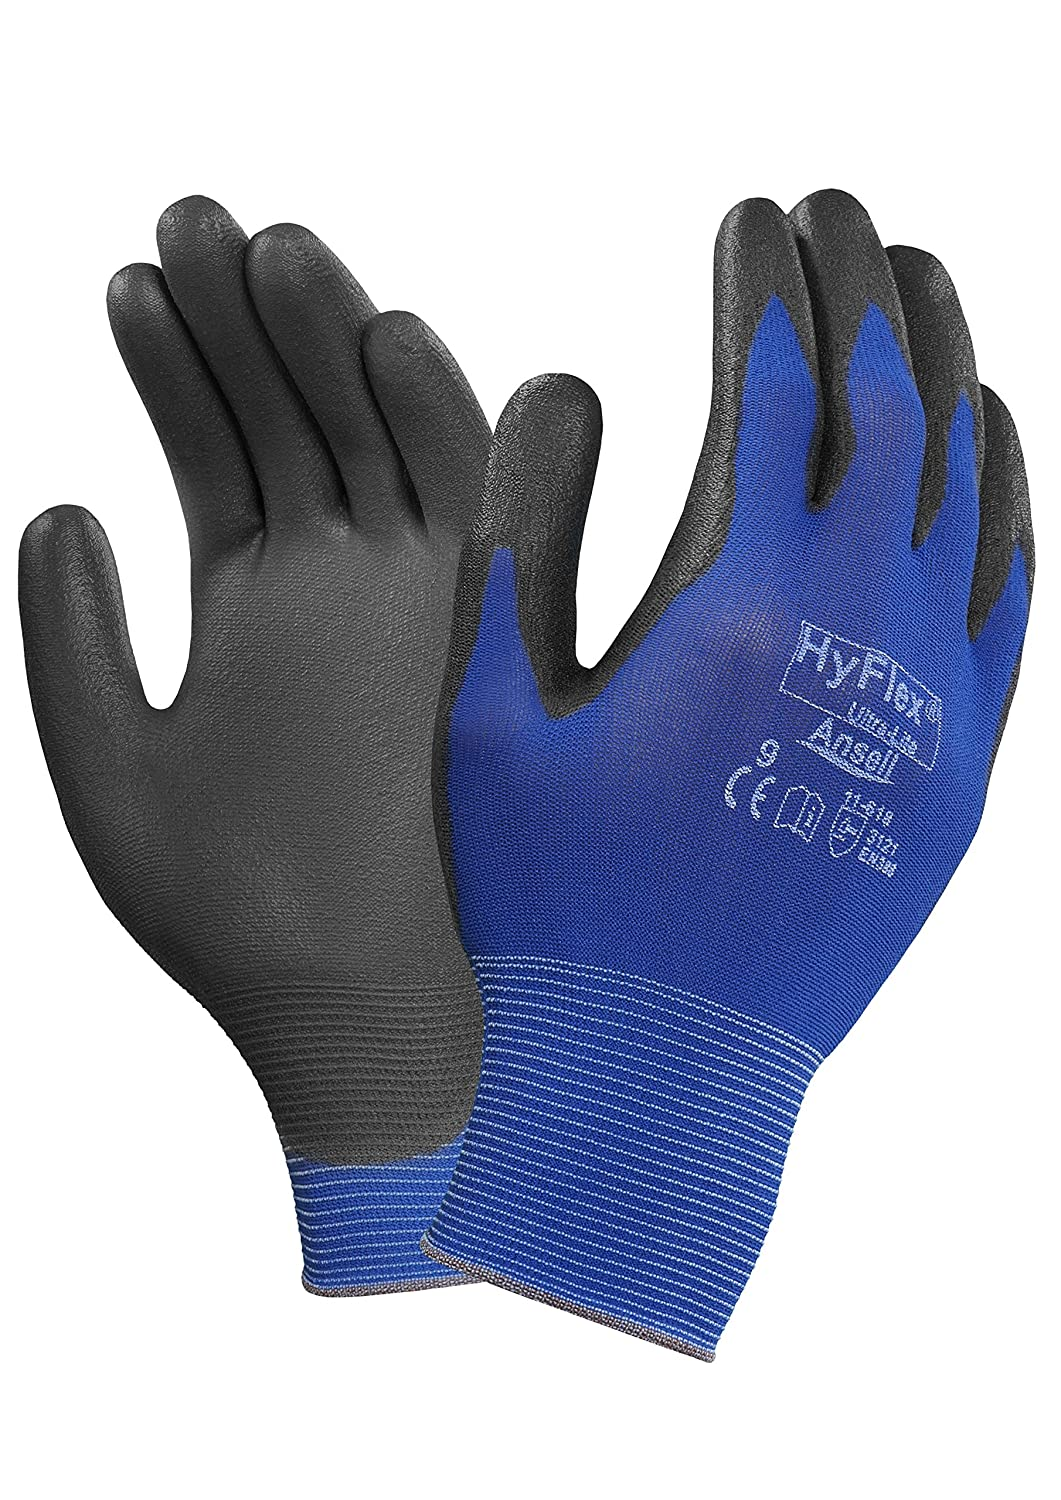 Ansell HyFlex 11-618 Nylon Light Duty Multi-Purpose Glove with Knitwrist, Abrasion/Cut Resistant, Size 8, Blue (Pack of 12 Pair) 11-618-288599